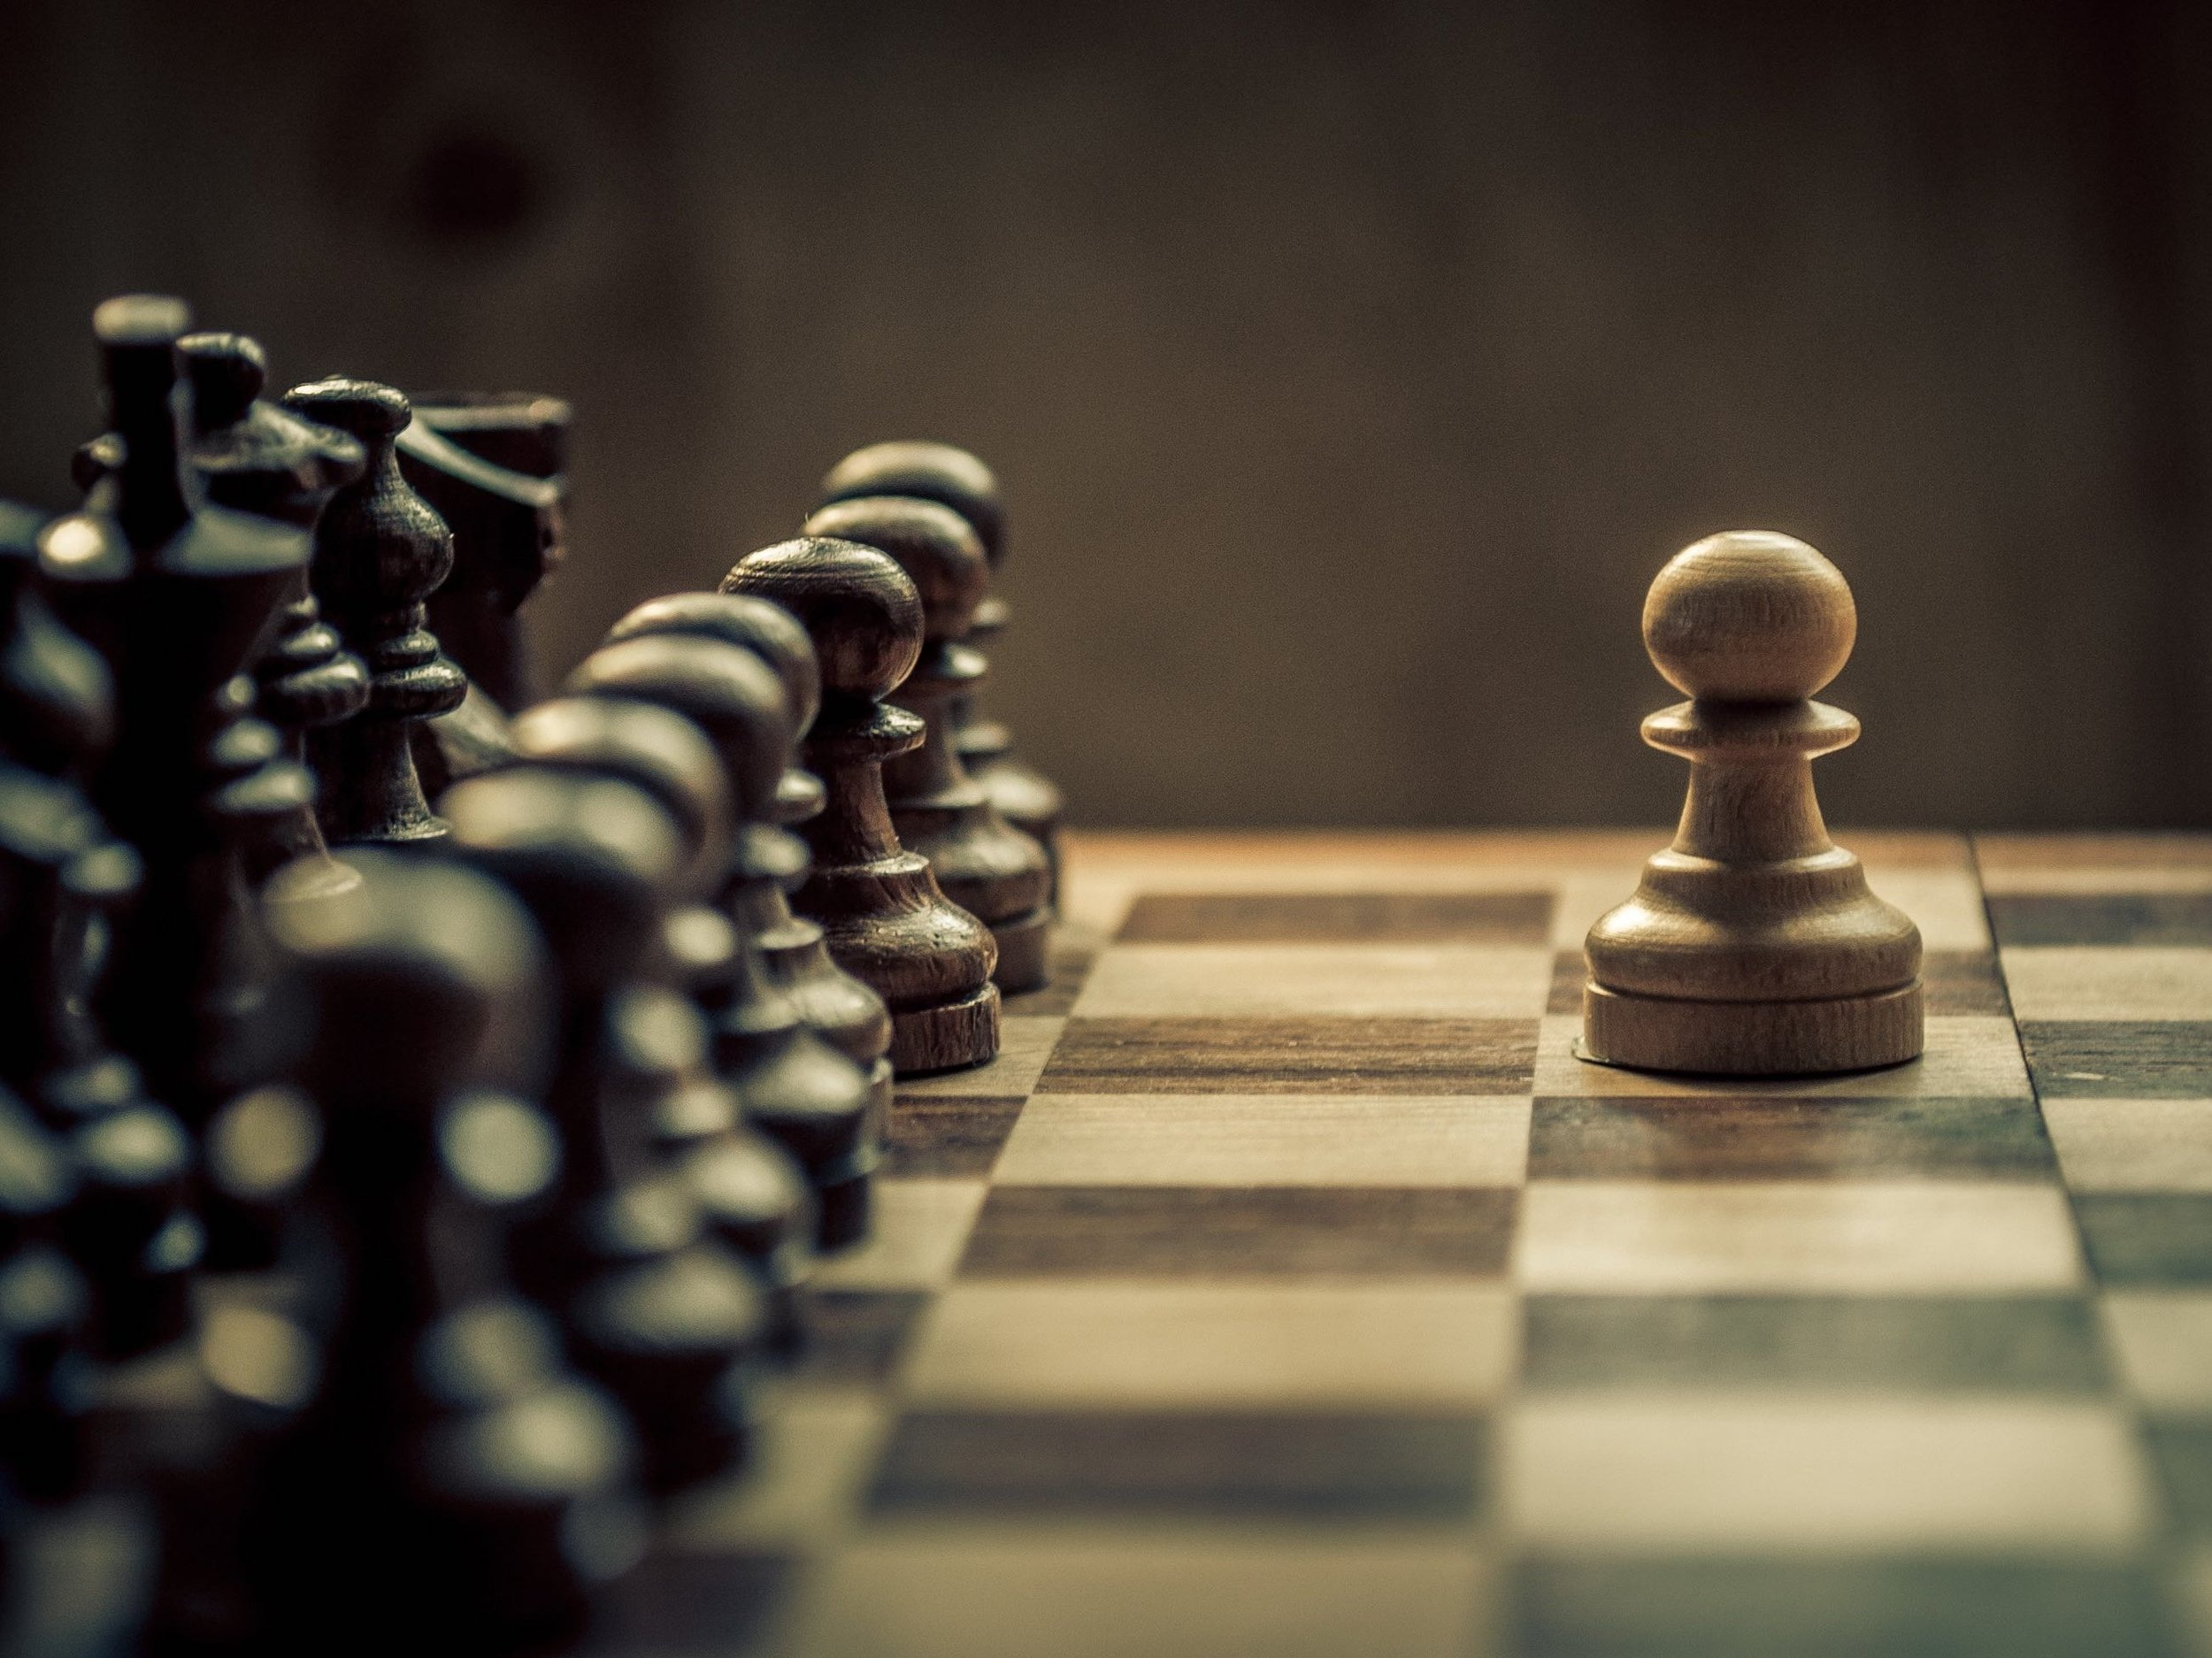 Chess-Life-and-Strategy-A-Discussion-.jpg